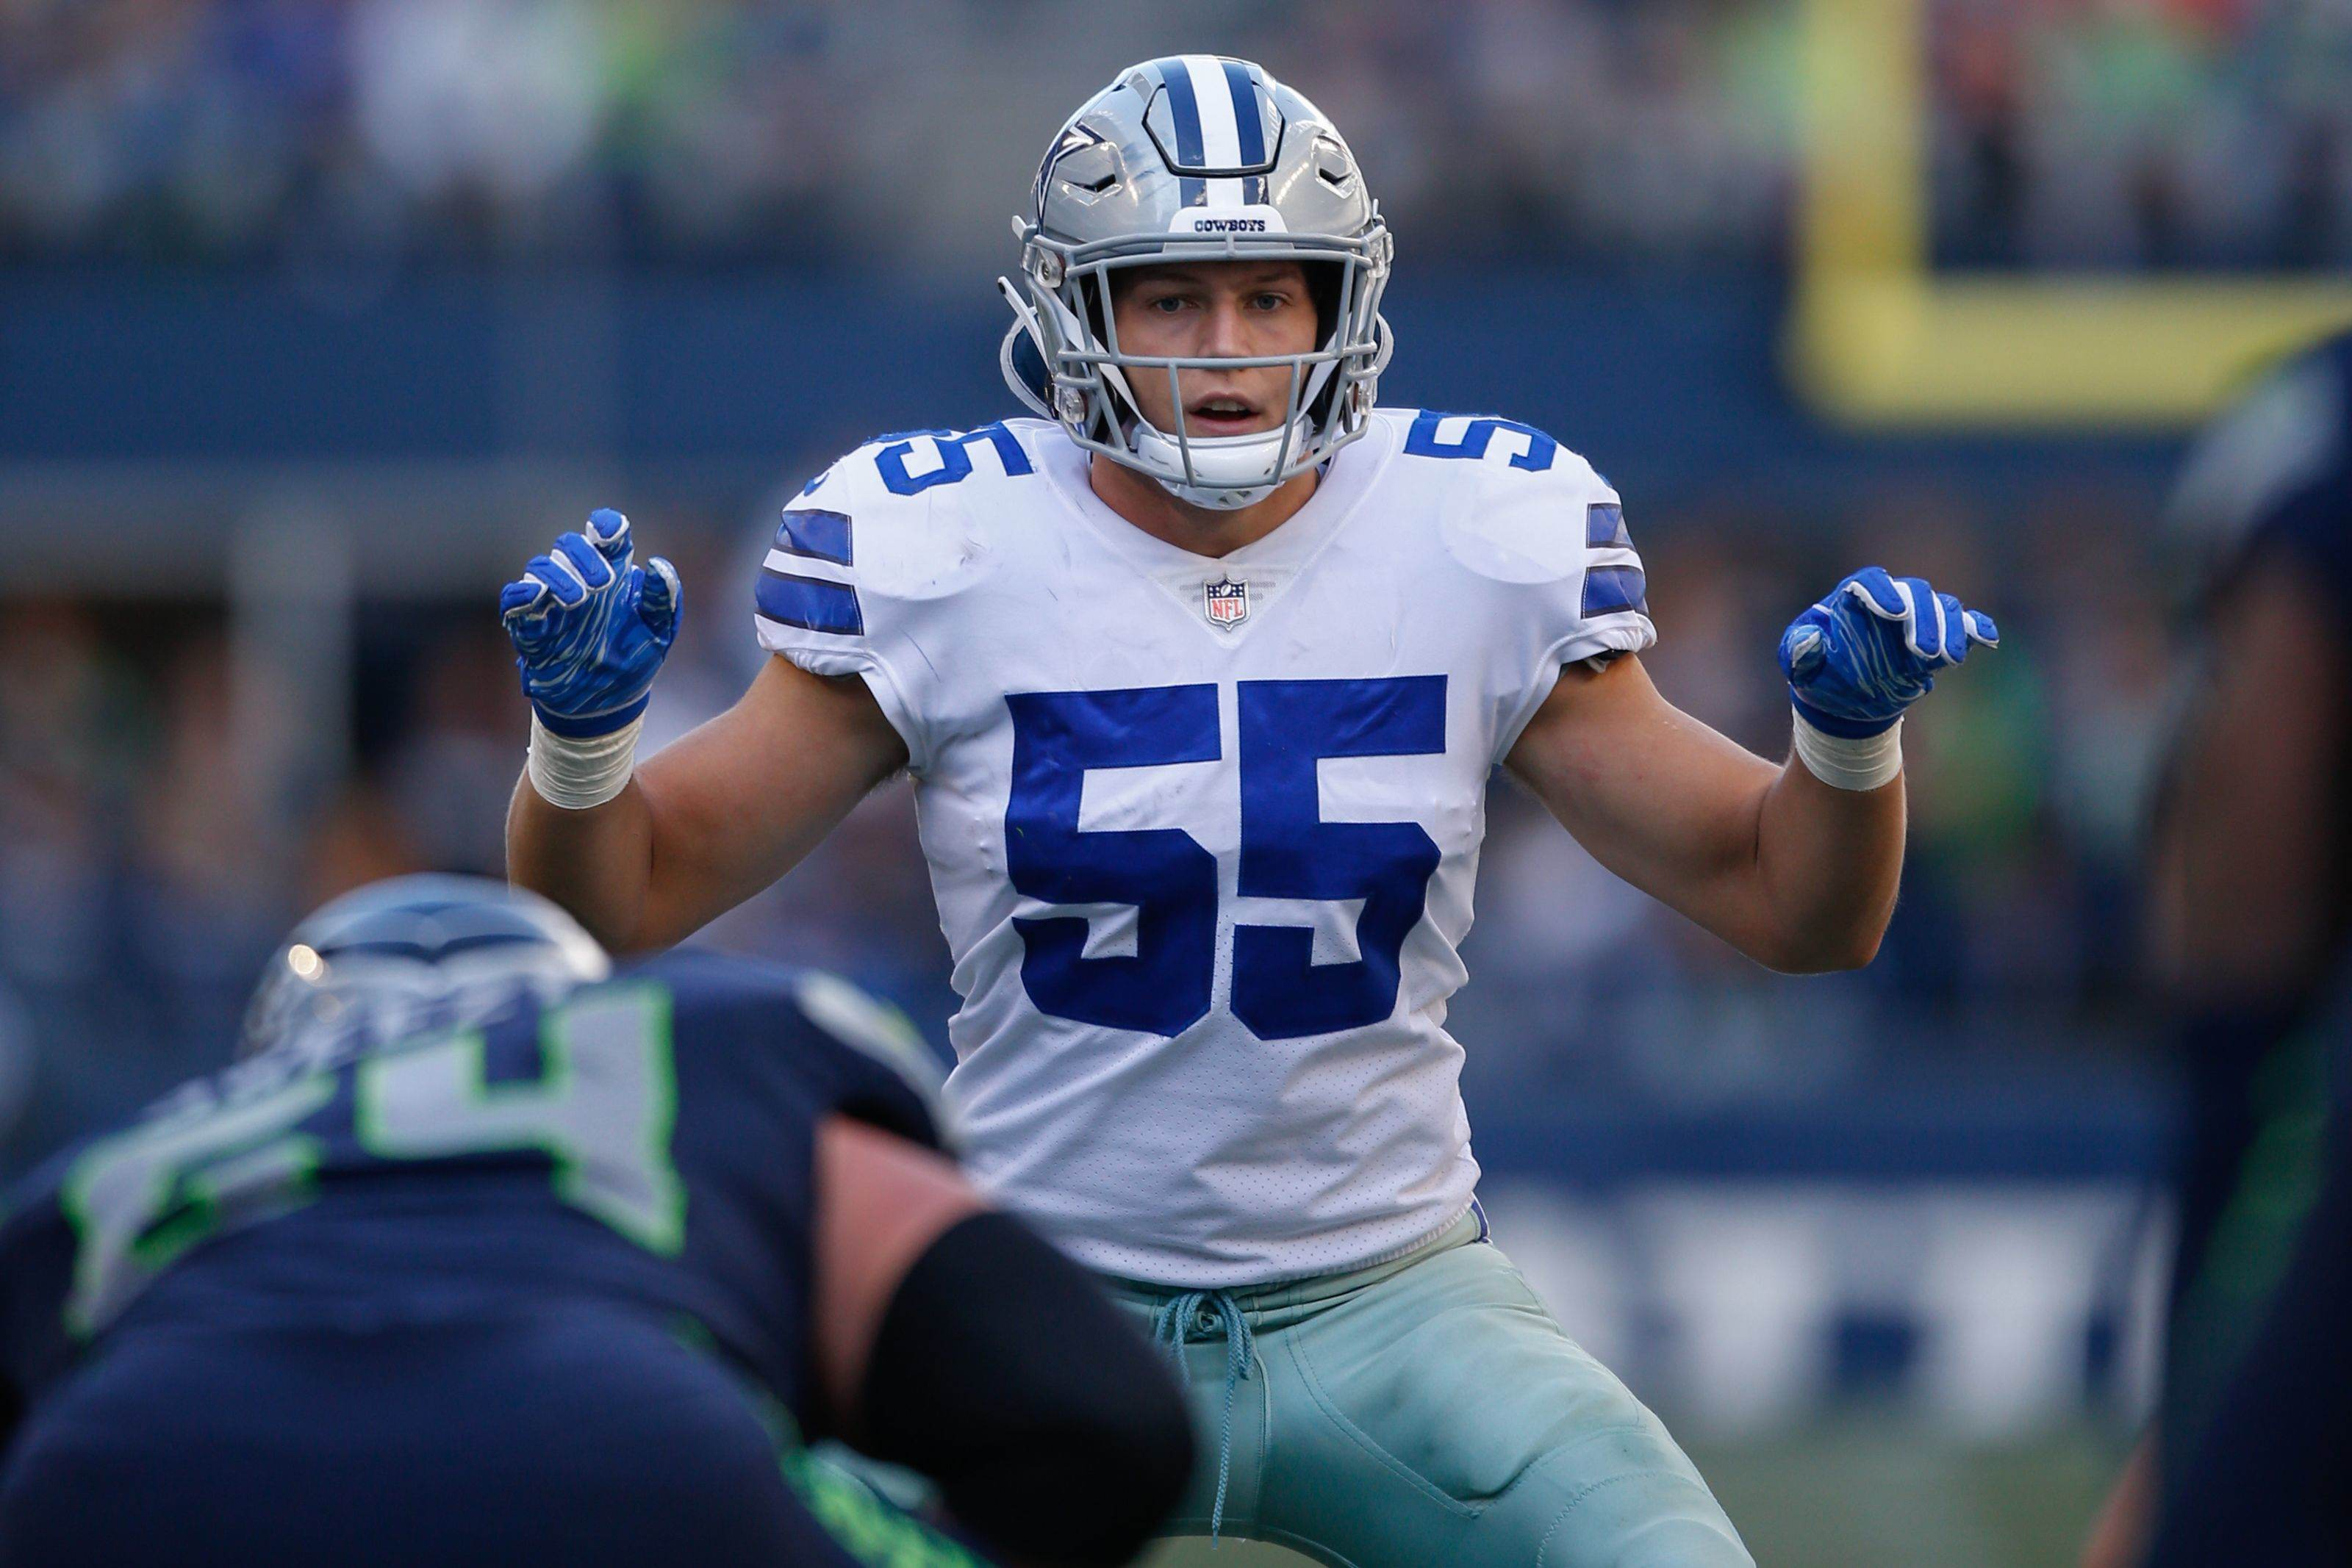 Leighton Vander Esch Lands on List of NFL's Top 10 Rookies